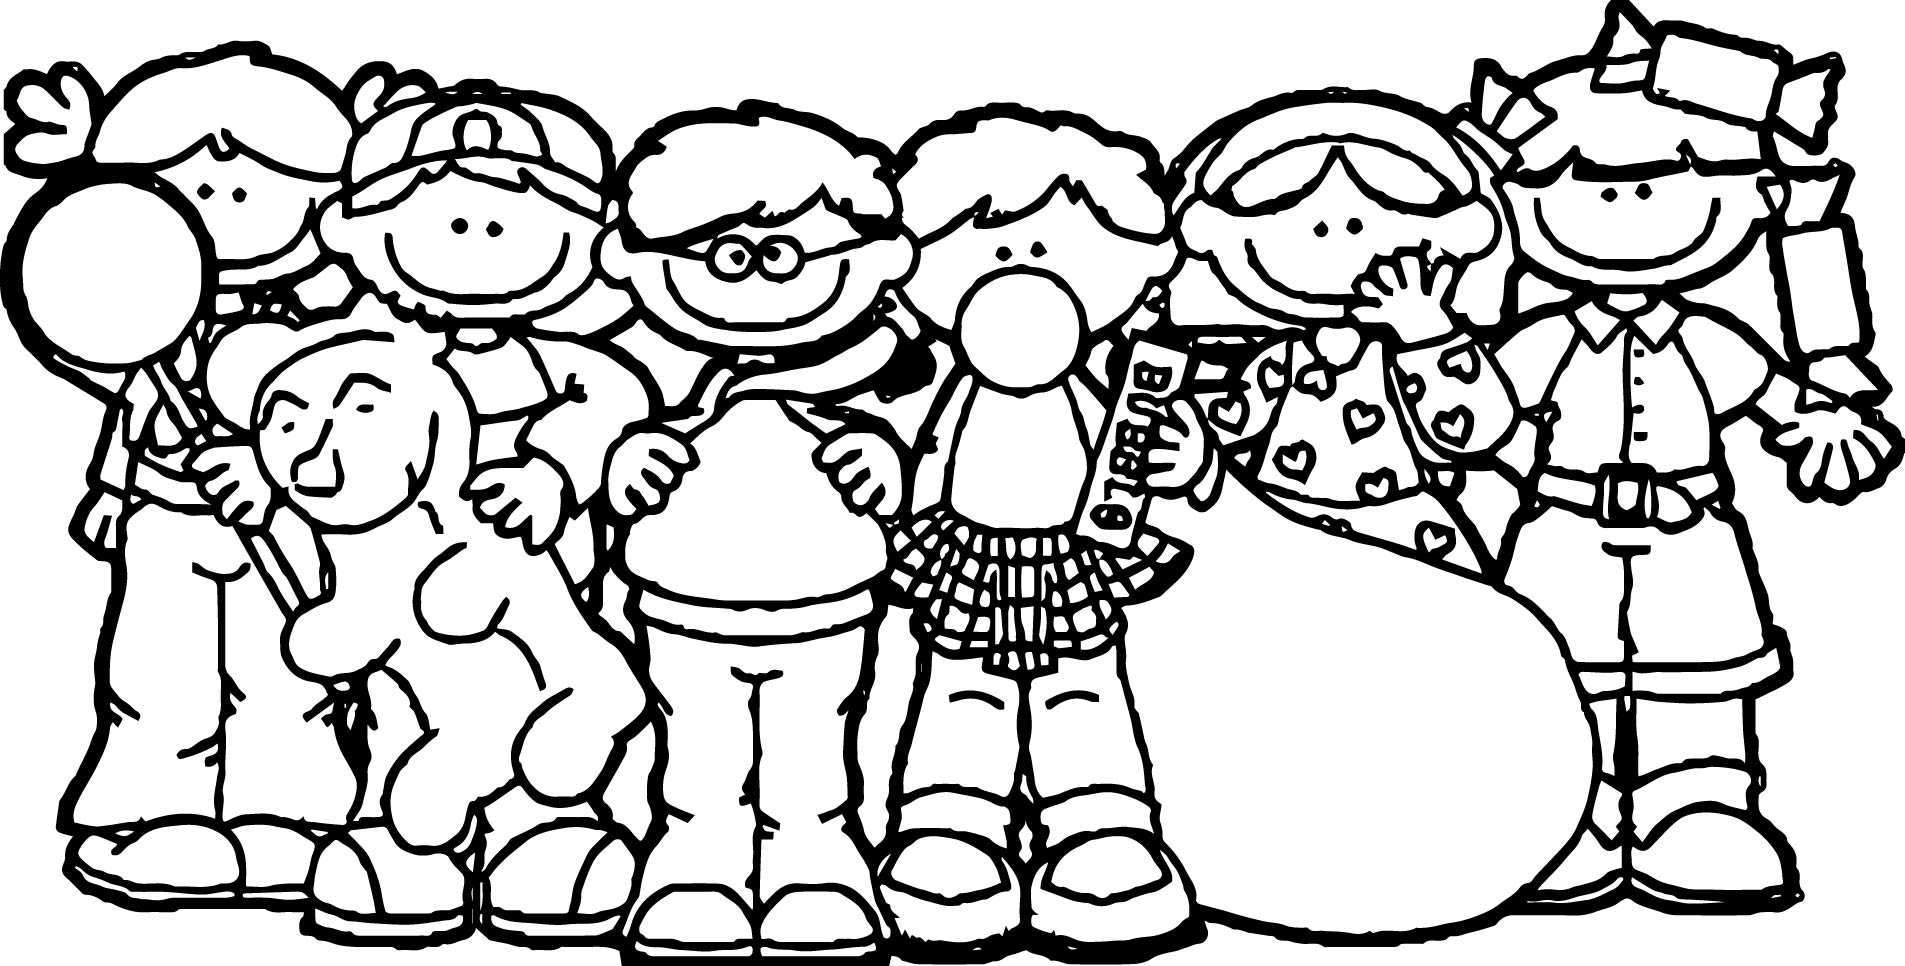 coloring for 3rd graders coloring pages 3rd grade graders for coloring 3rd